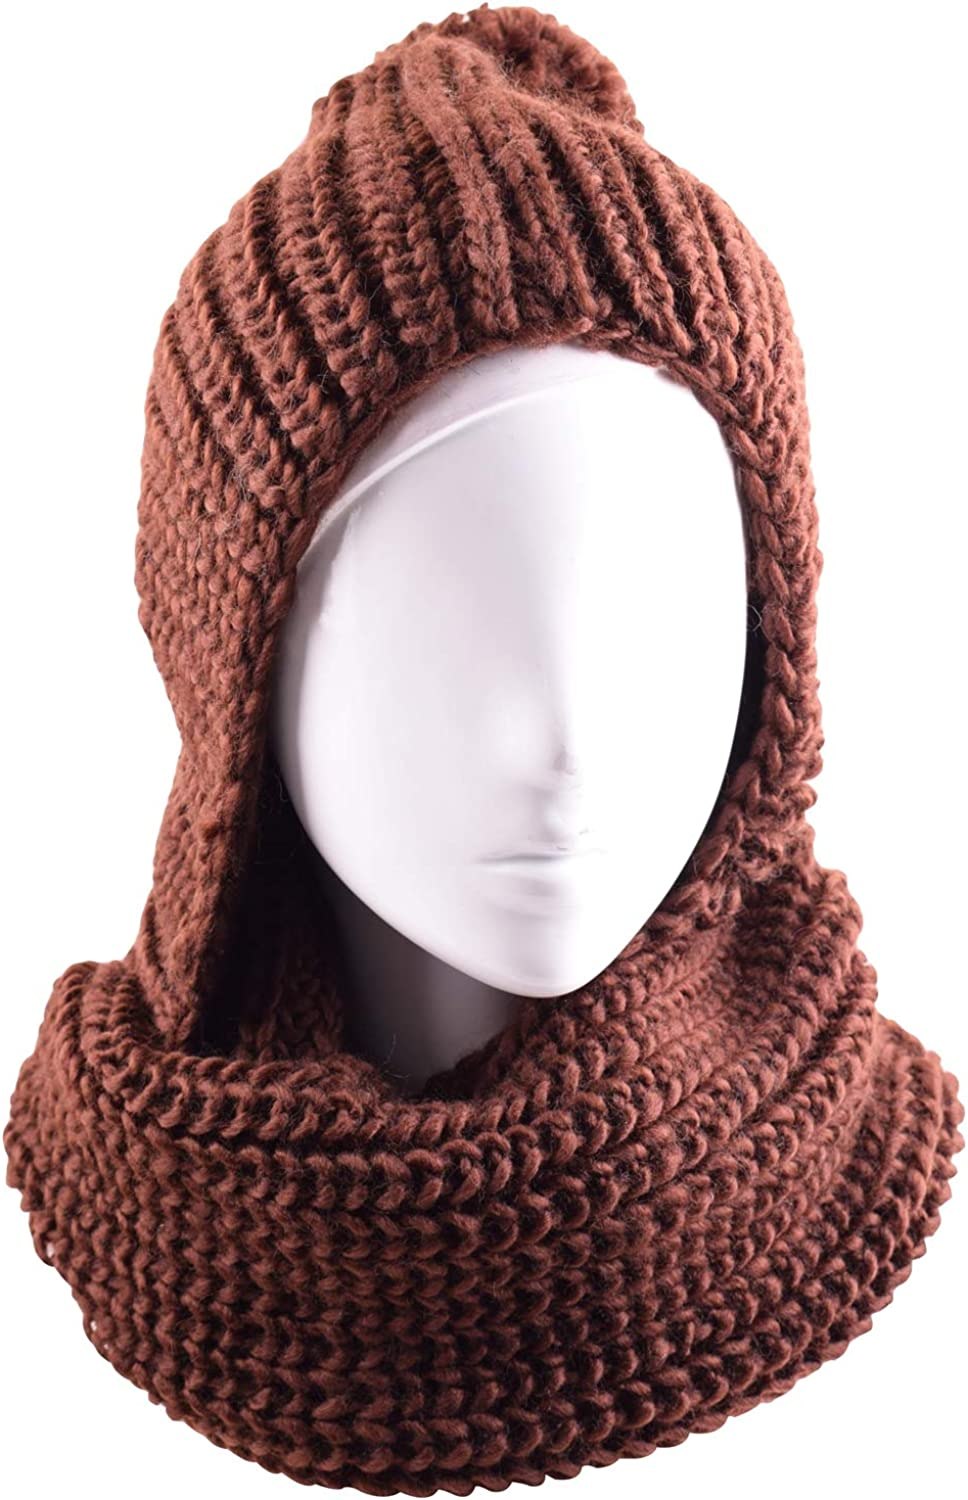 CEAJOO Women's Hood Infinity Scarfs Winter Hats Set Thick Warm Cable Knit